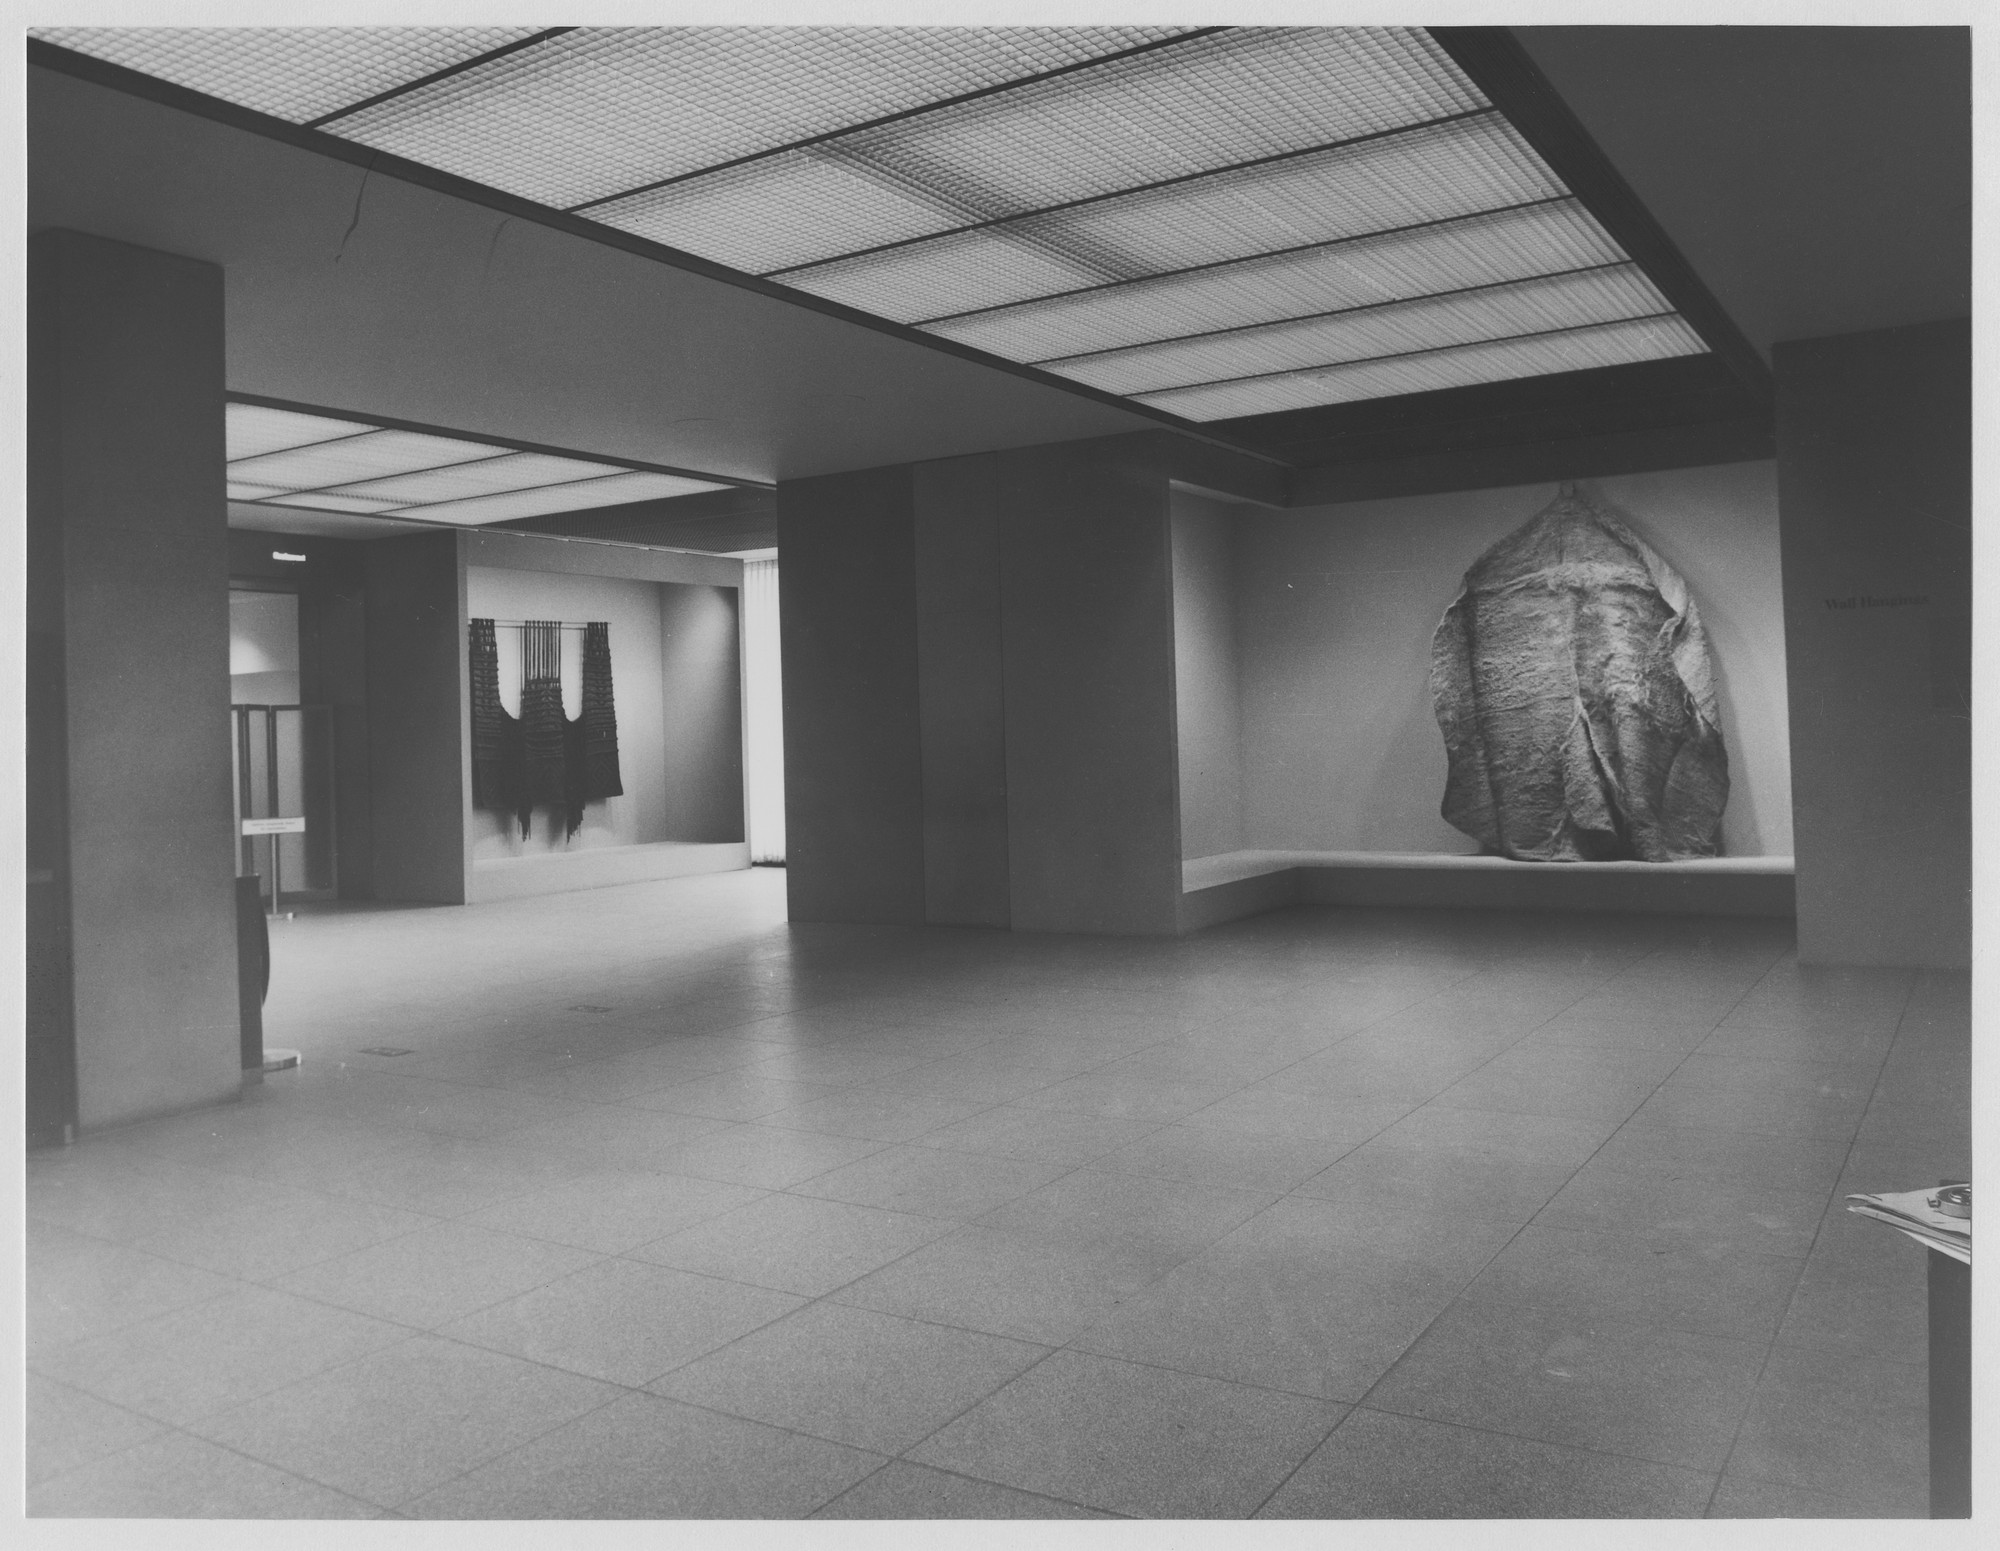 "Installation view of the exhibition, ""Wall Hangings."" February 25, 1969–May 4, 1969. Photographic Archive. The Museum of Modern Art Archives, New York. IN882.1. Photograph by Stan Ries."